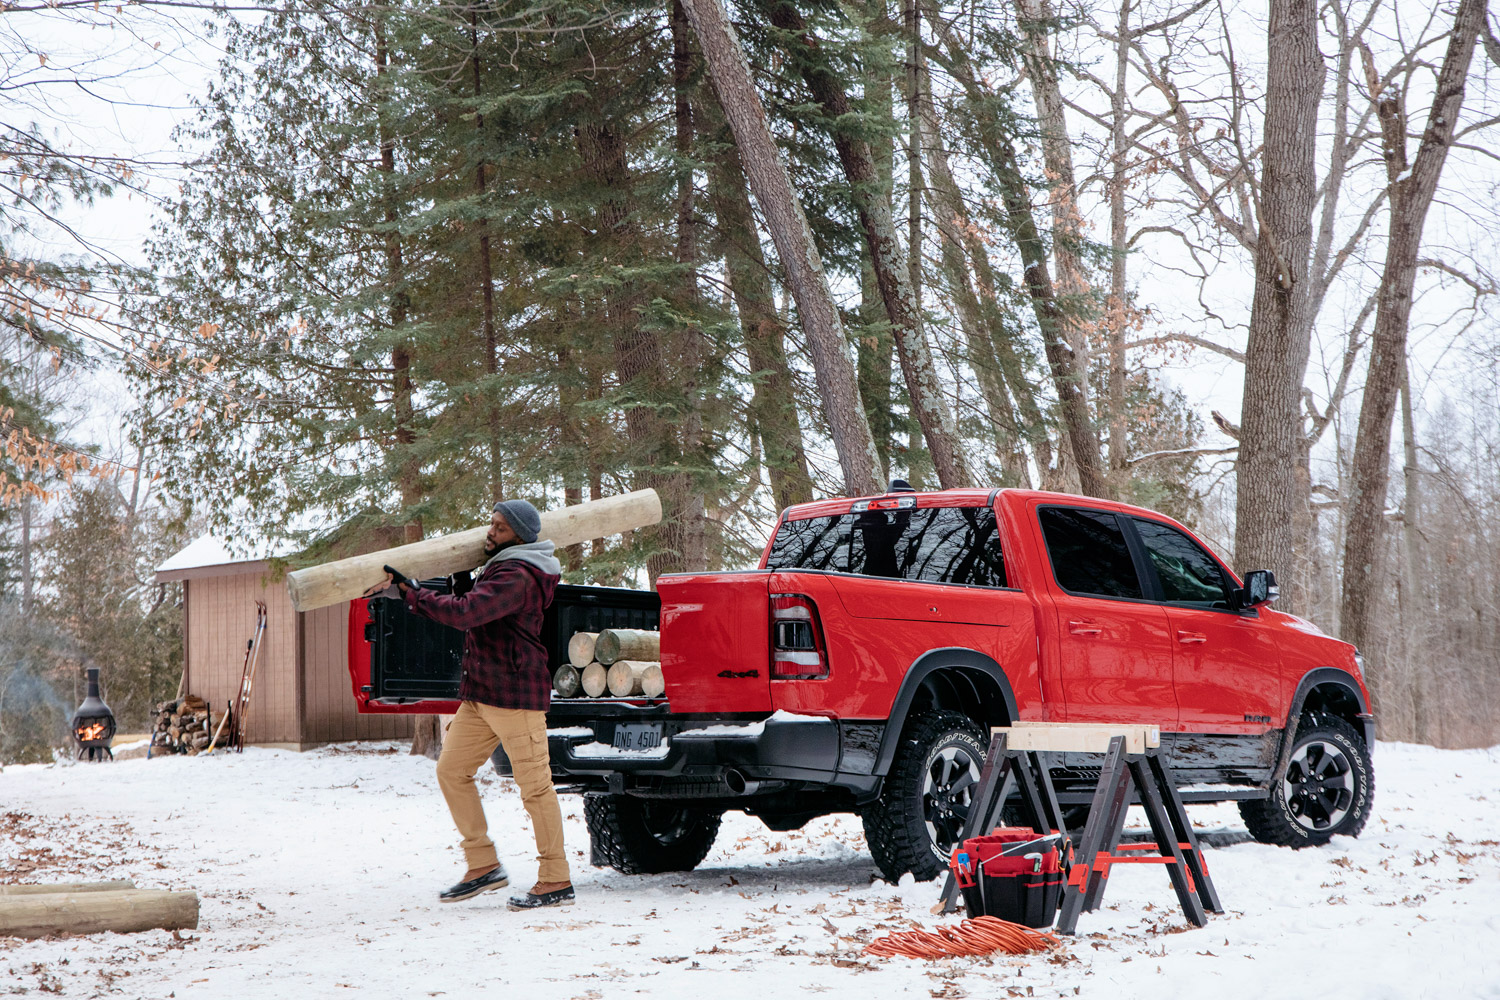 2019 Ram 1500 multifunction tailgate logs unloaded